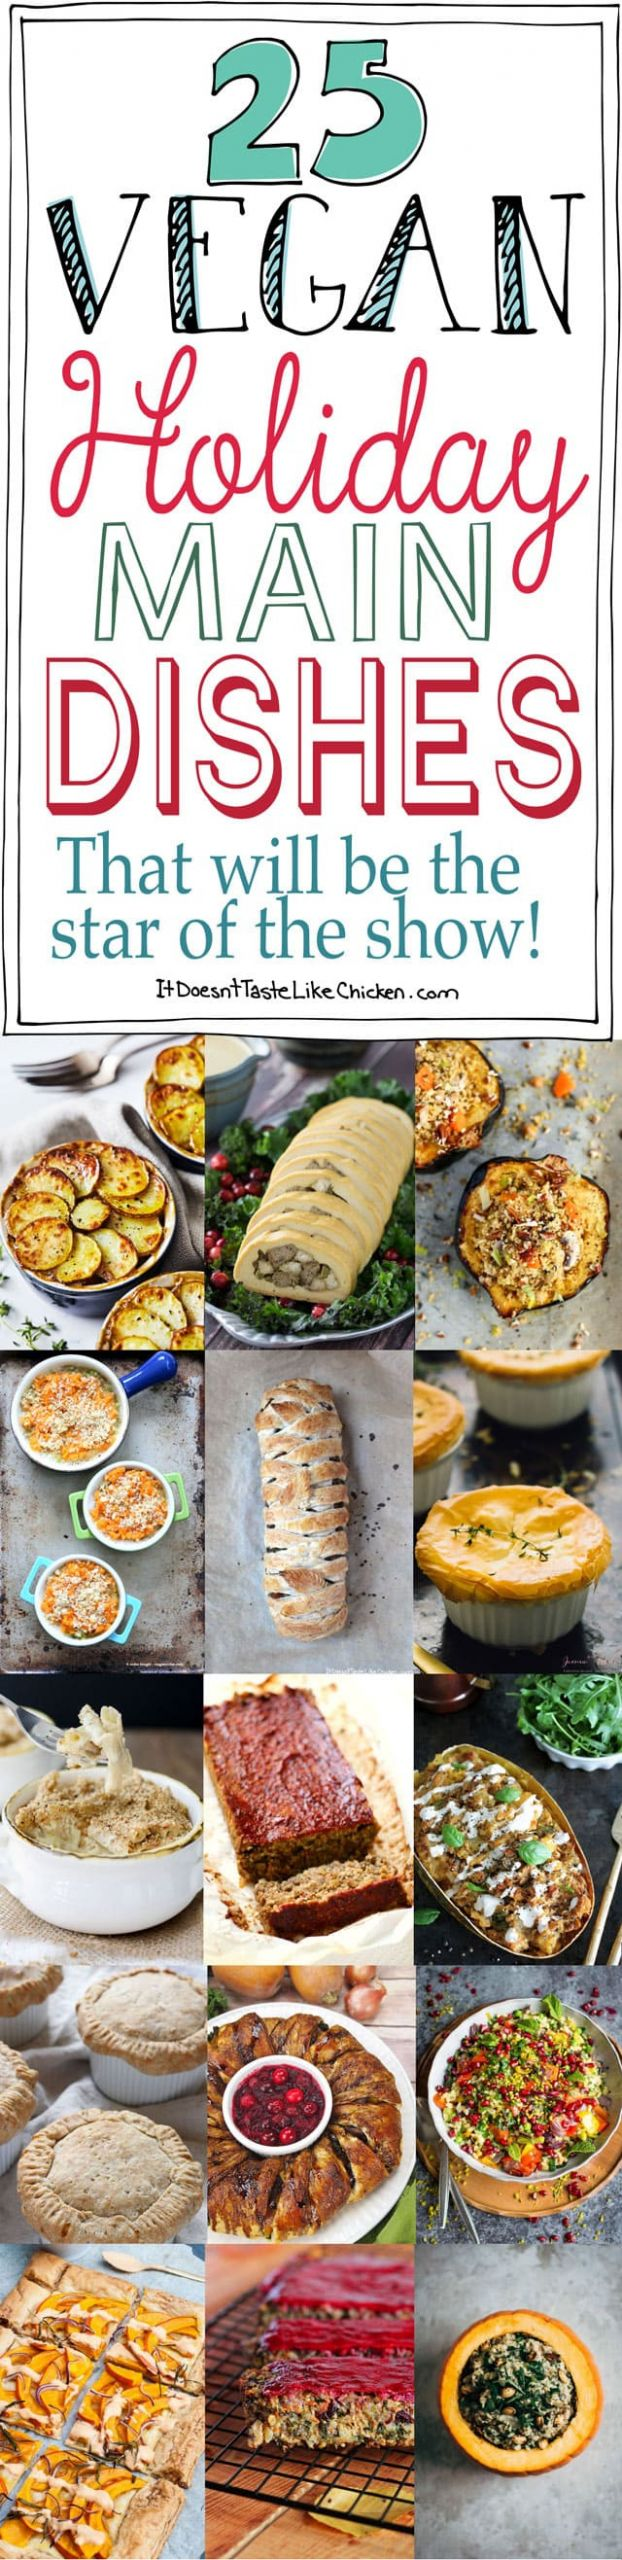 Vegetarian Holiday Main Dishes  25 Vegan Holiday Main Dishes That Will Be The Star of the